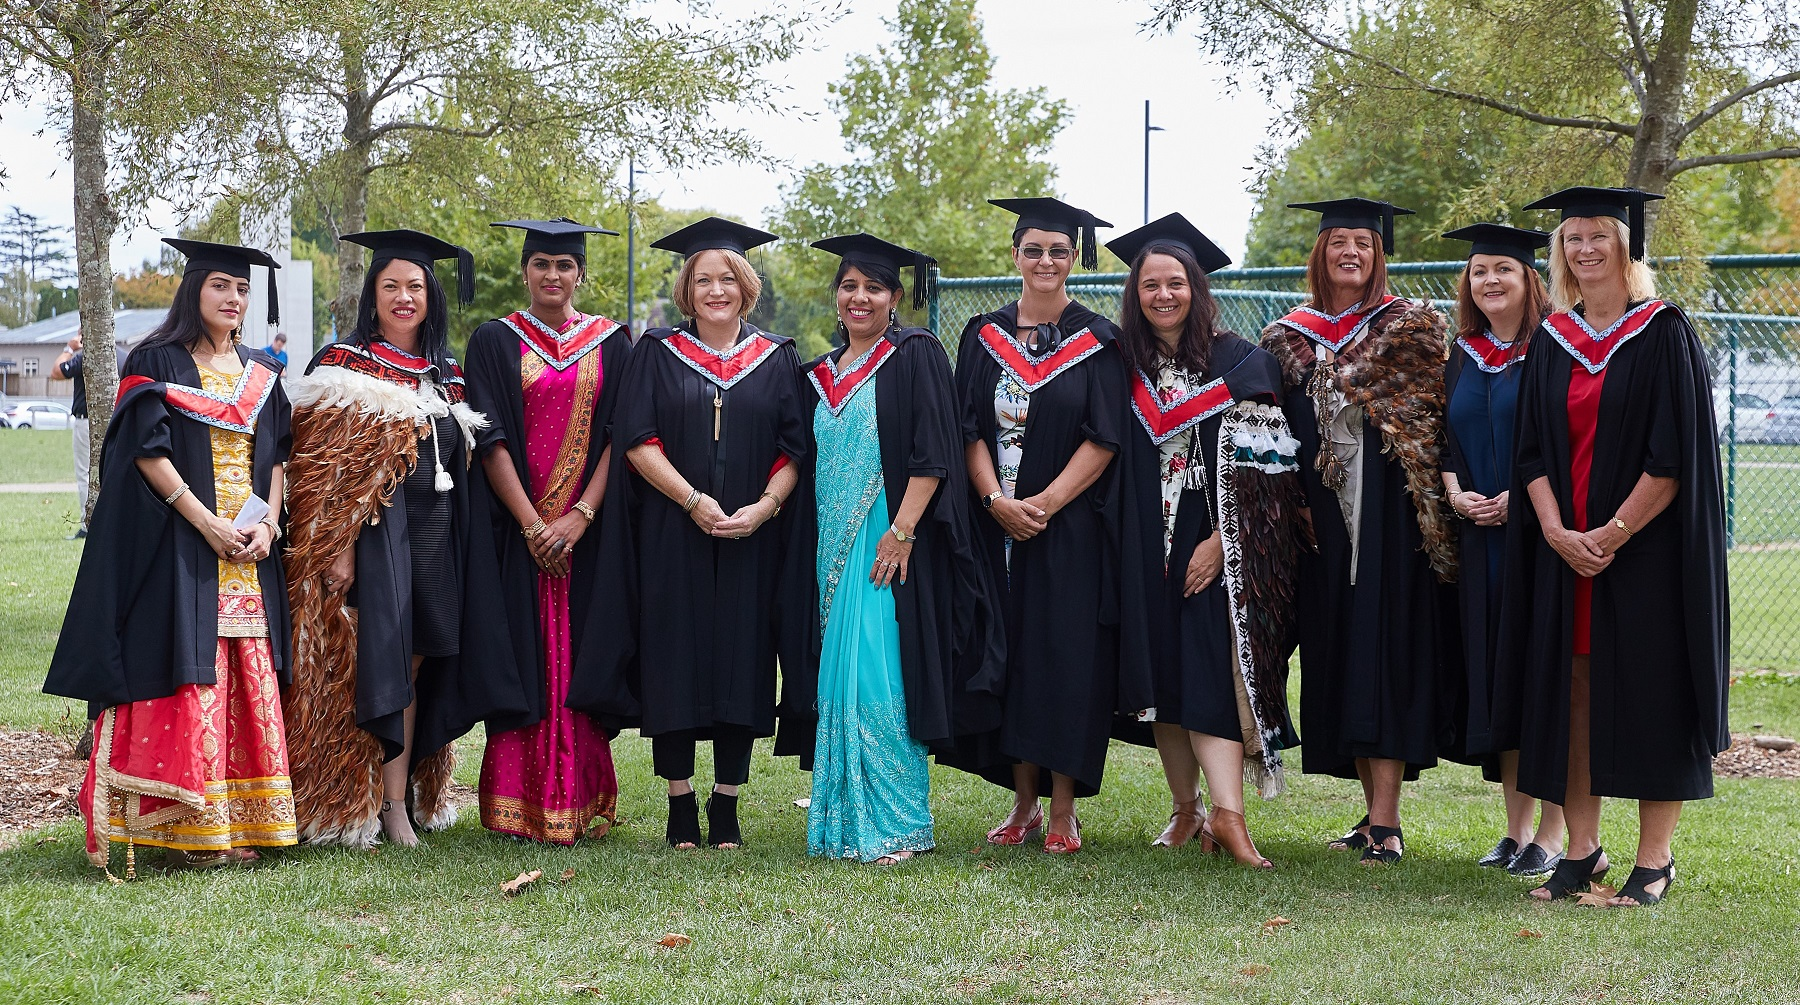 Natalie Lewis, Janette Ngaheu and Myra Pourau with the 2019 Wintec Master of Nursing and Master of Professional Practice graduates.